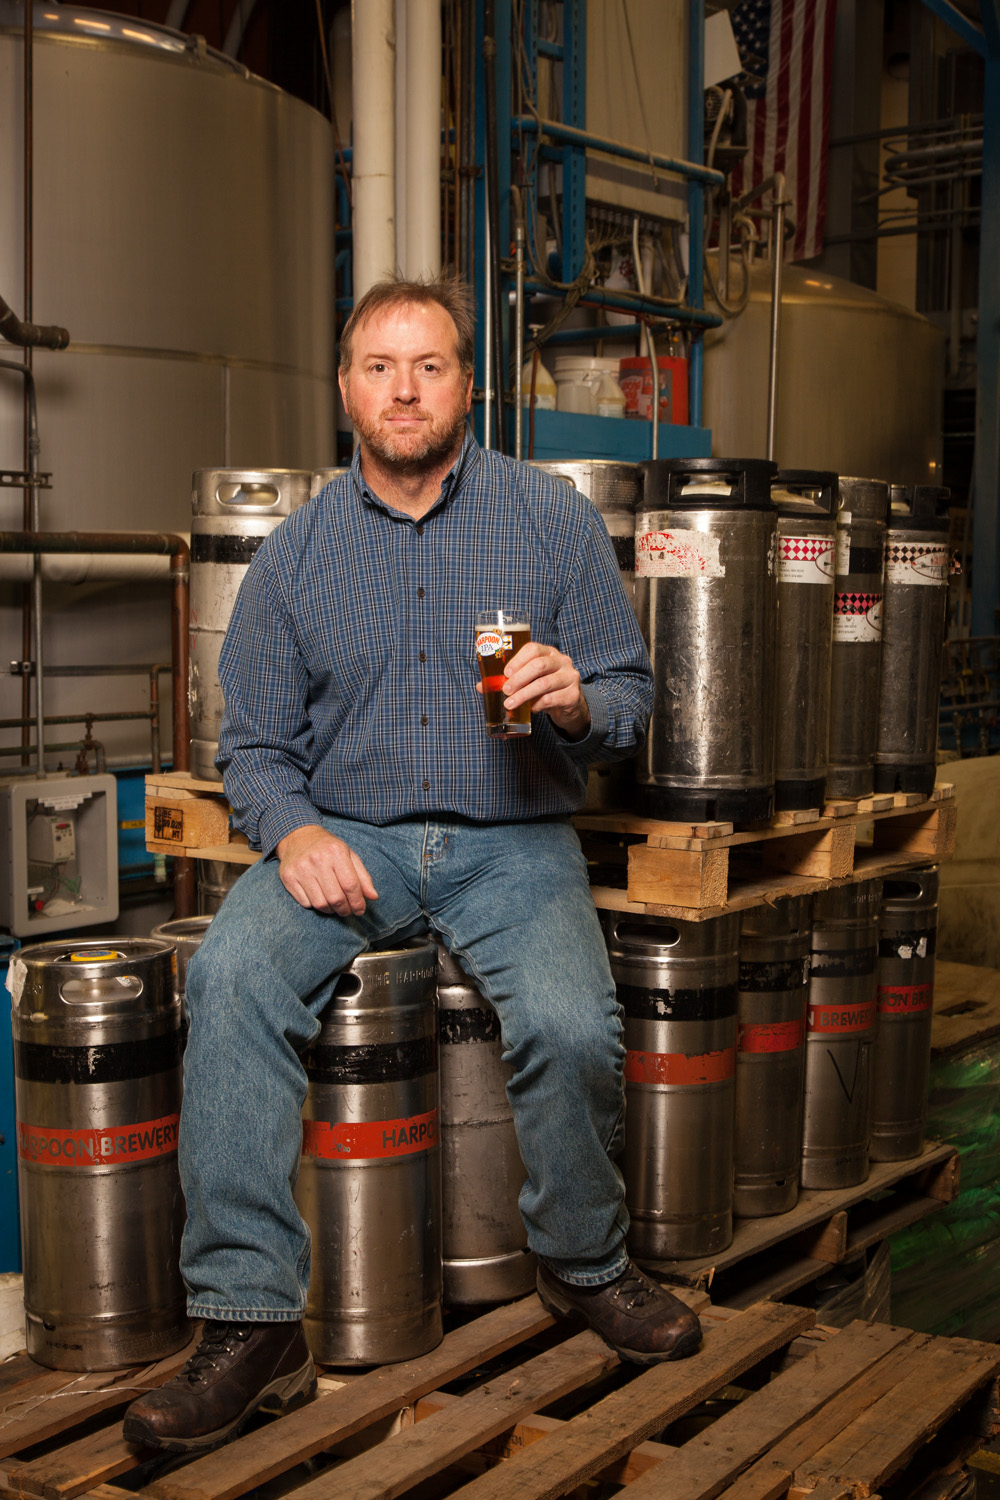 Scott Shirley, Head Brewer at Harpoon Brewery, Windsor, VT Established in 2000